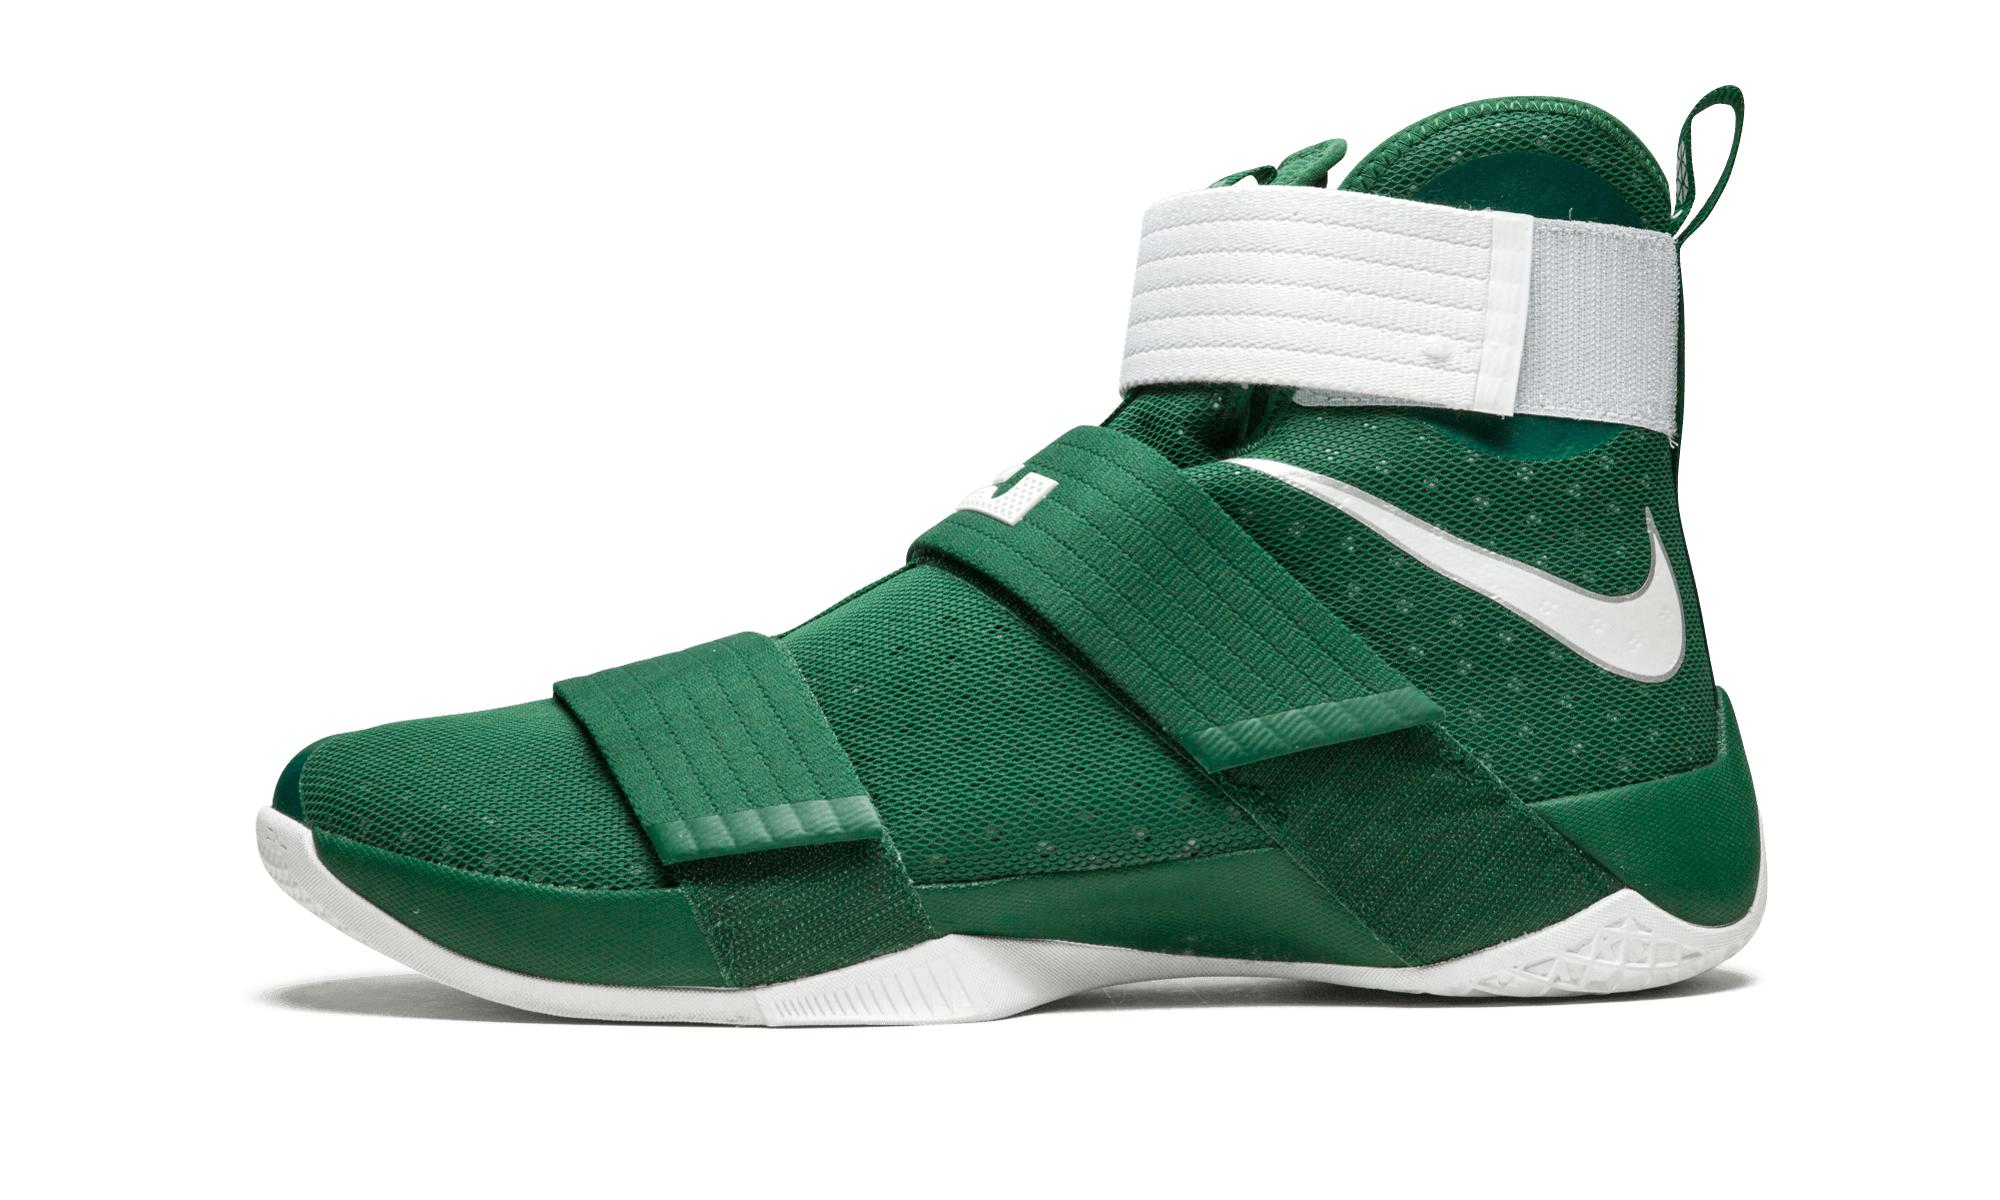 0241f956e82 ... usa lyst nike lebron soldier 10 tb in green for men 9436a 13cc0